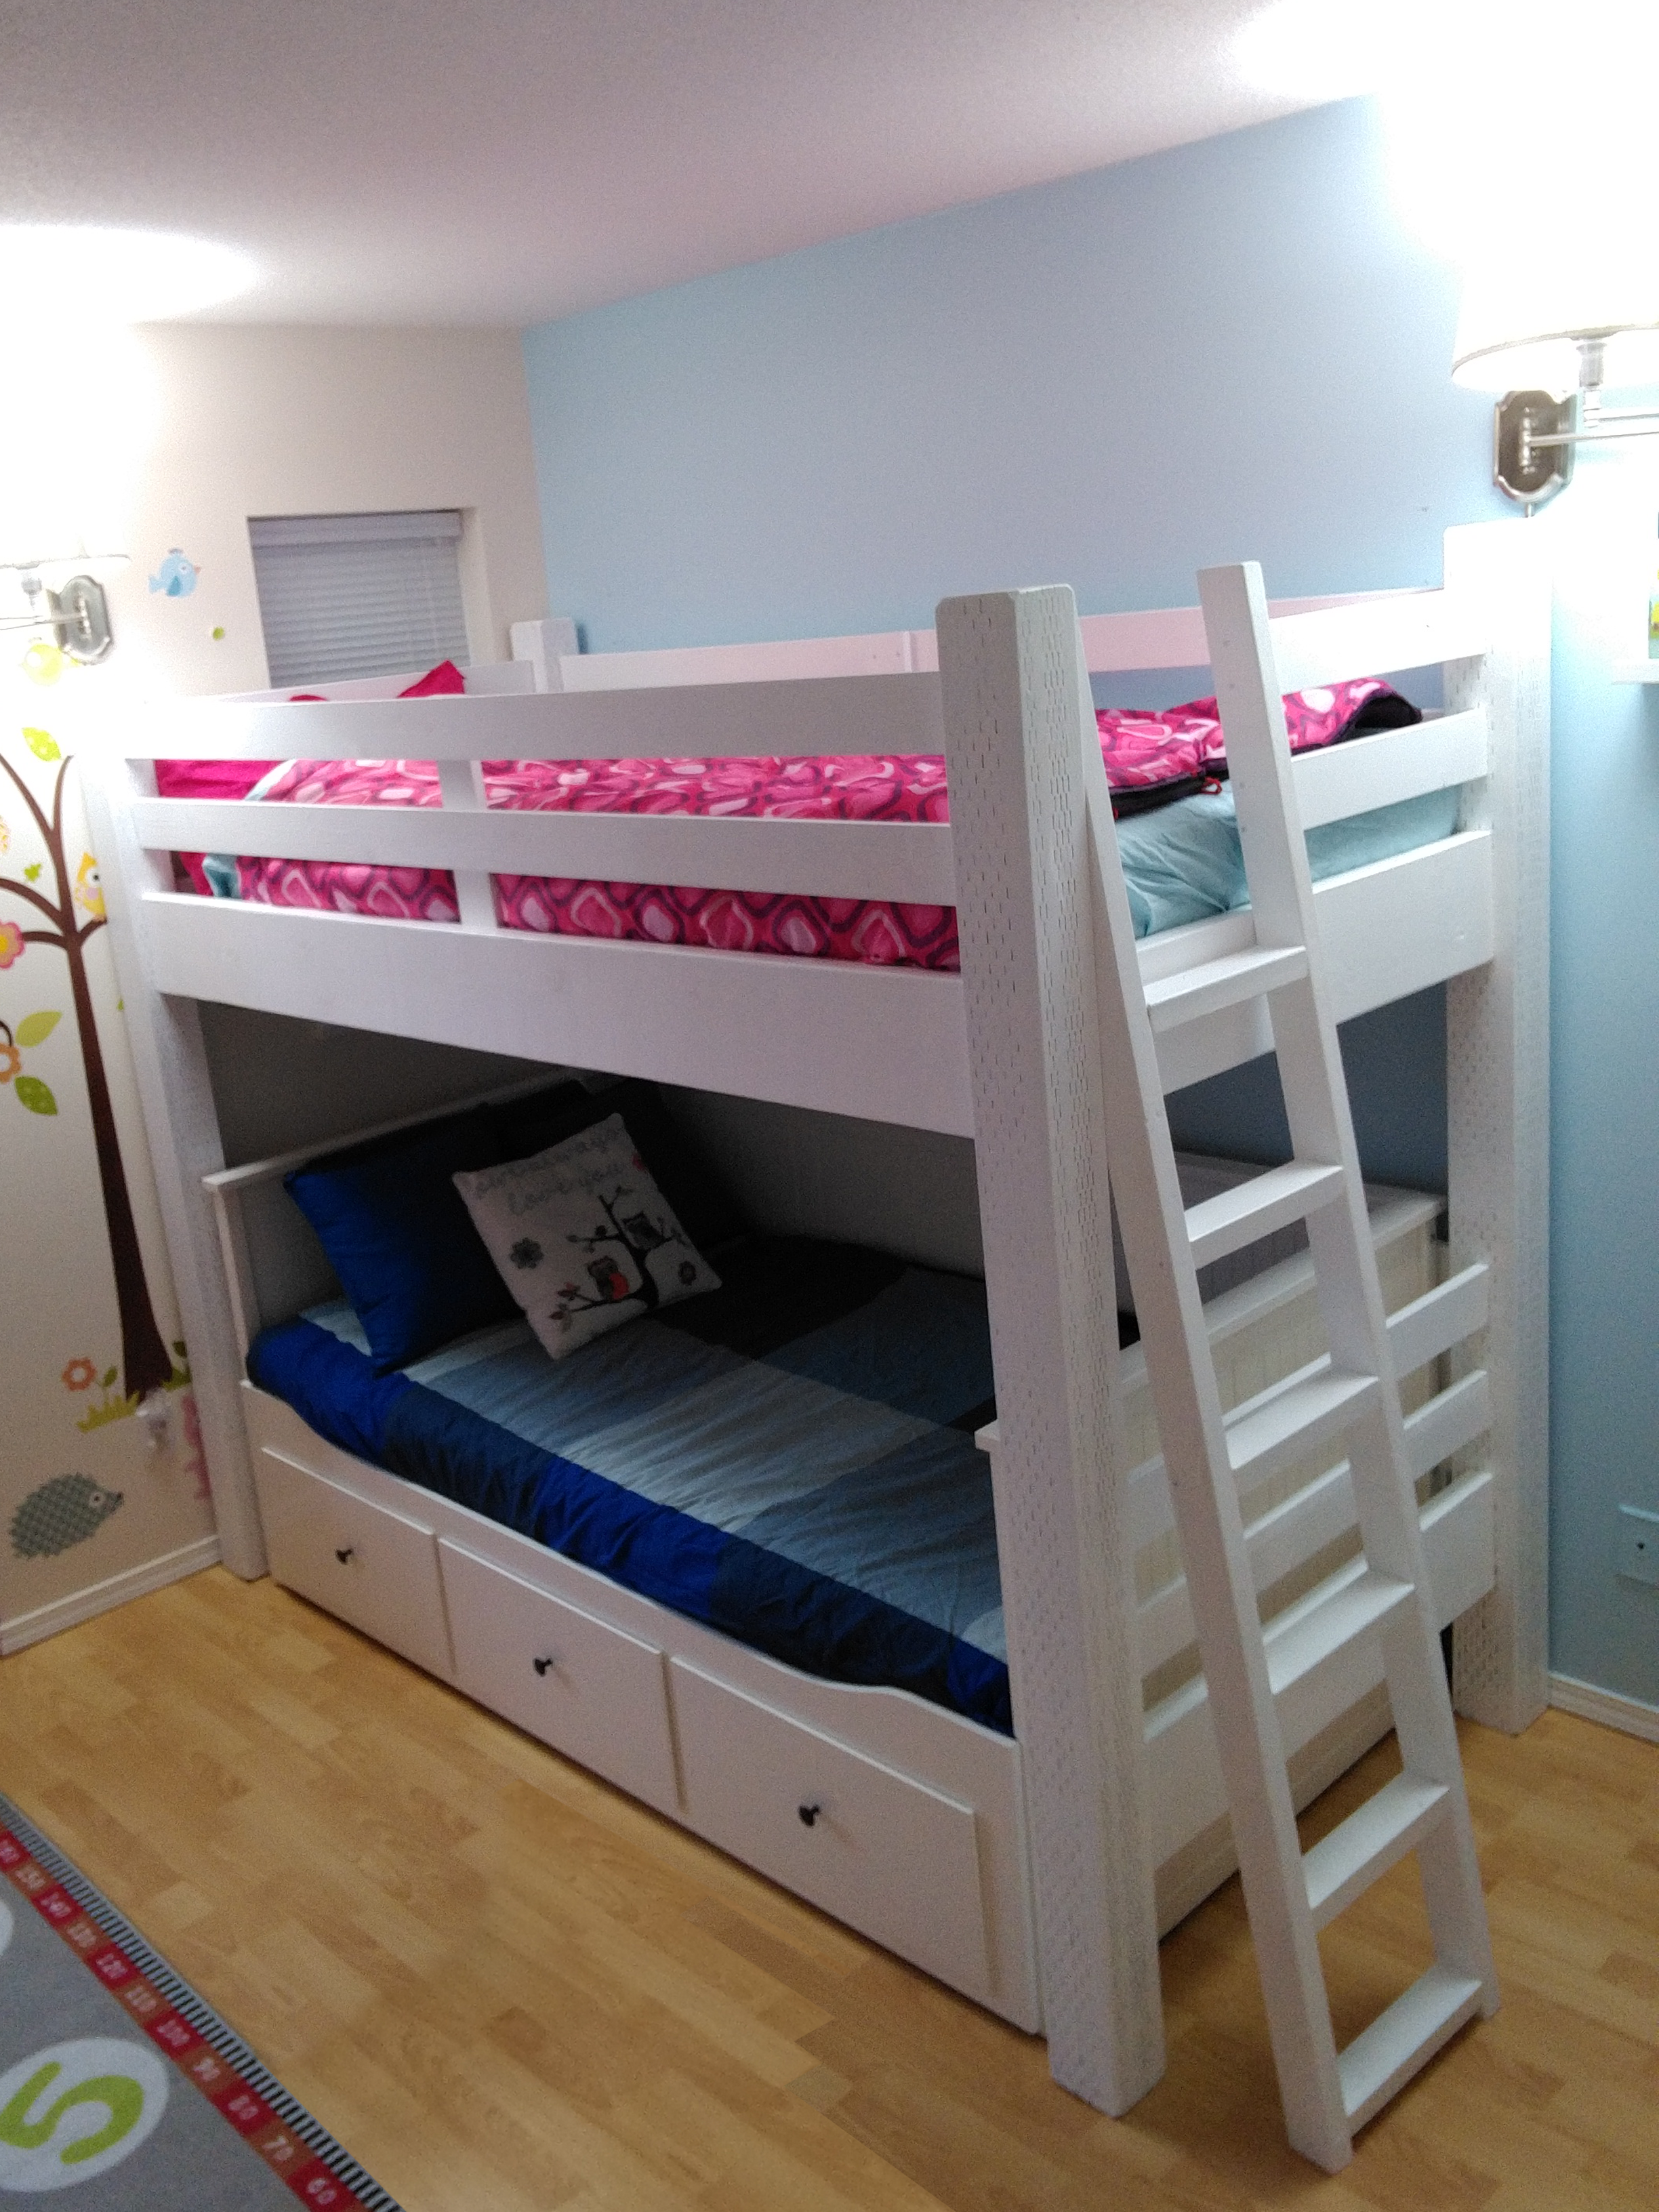 Custom Loft Bed Built To Wrap The Ikea Hemnes Daybed Kids Room